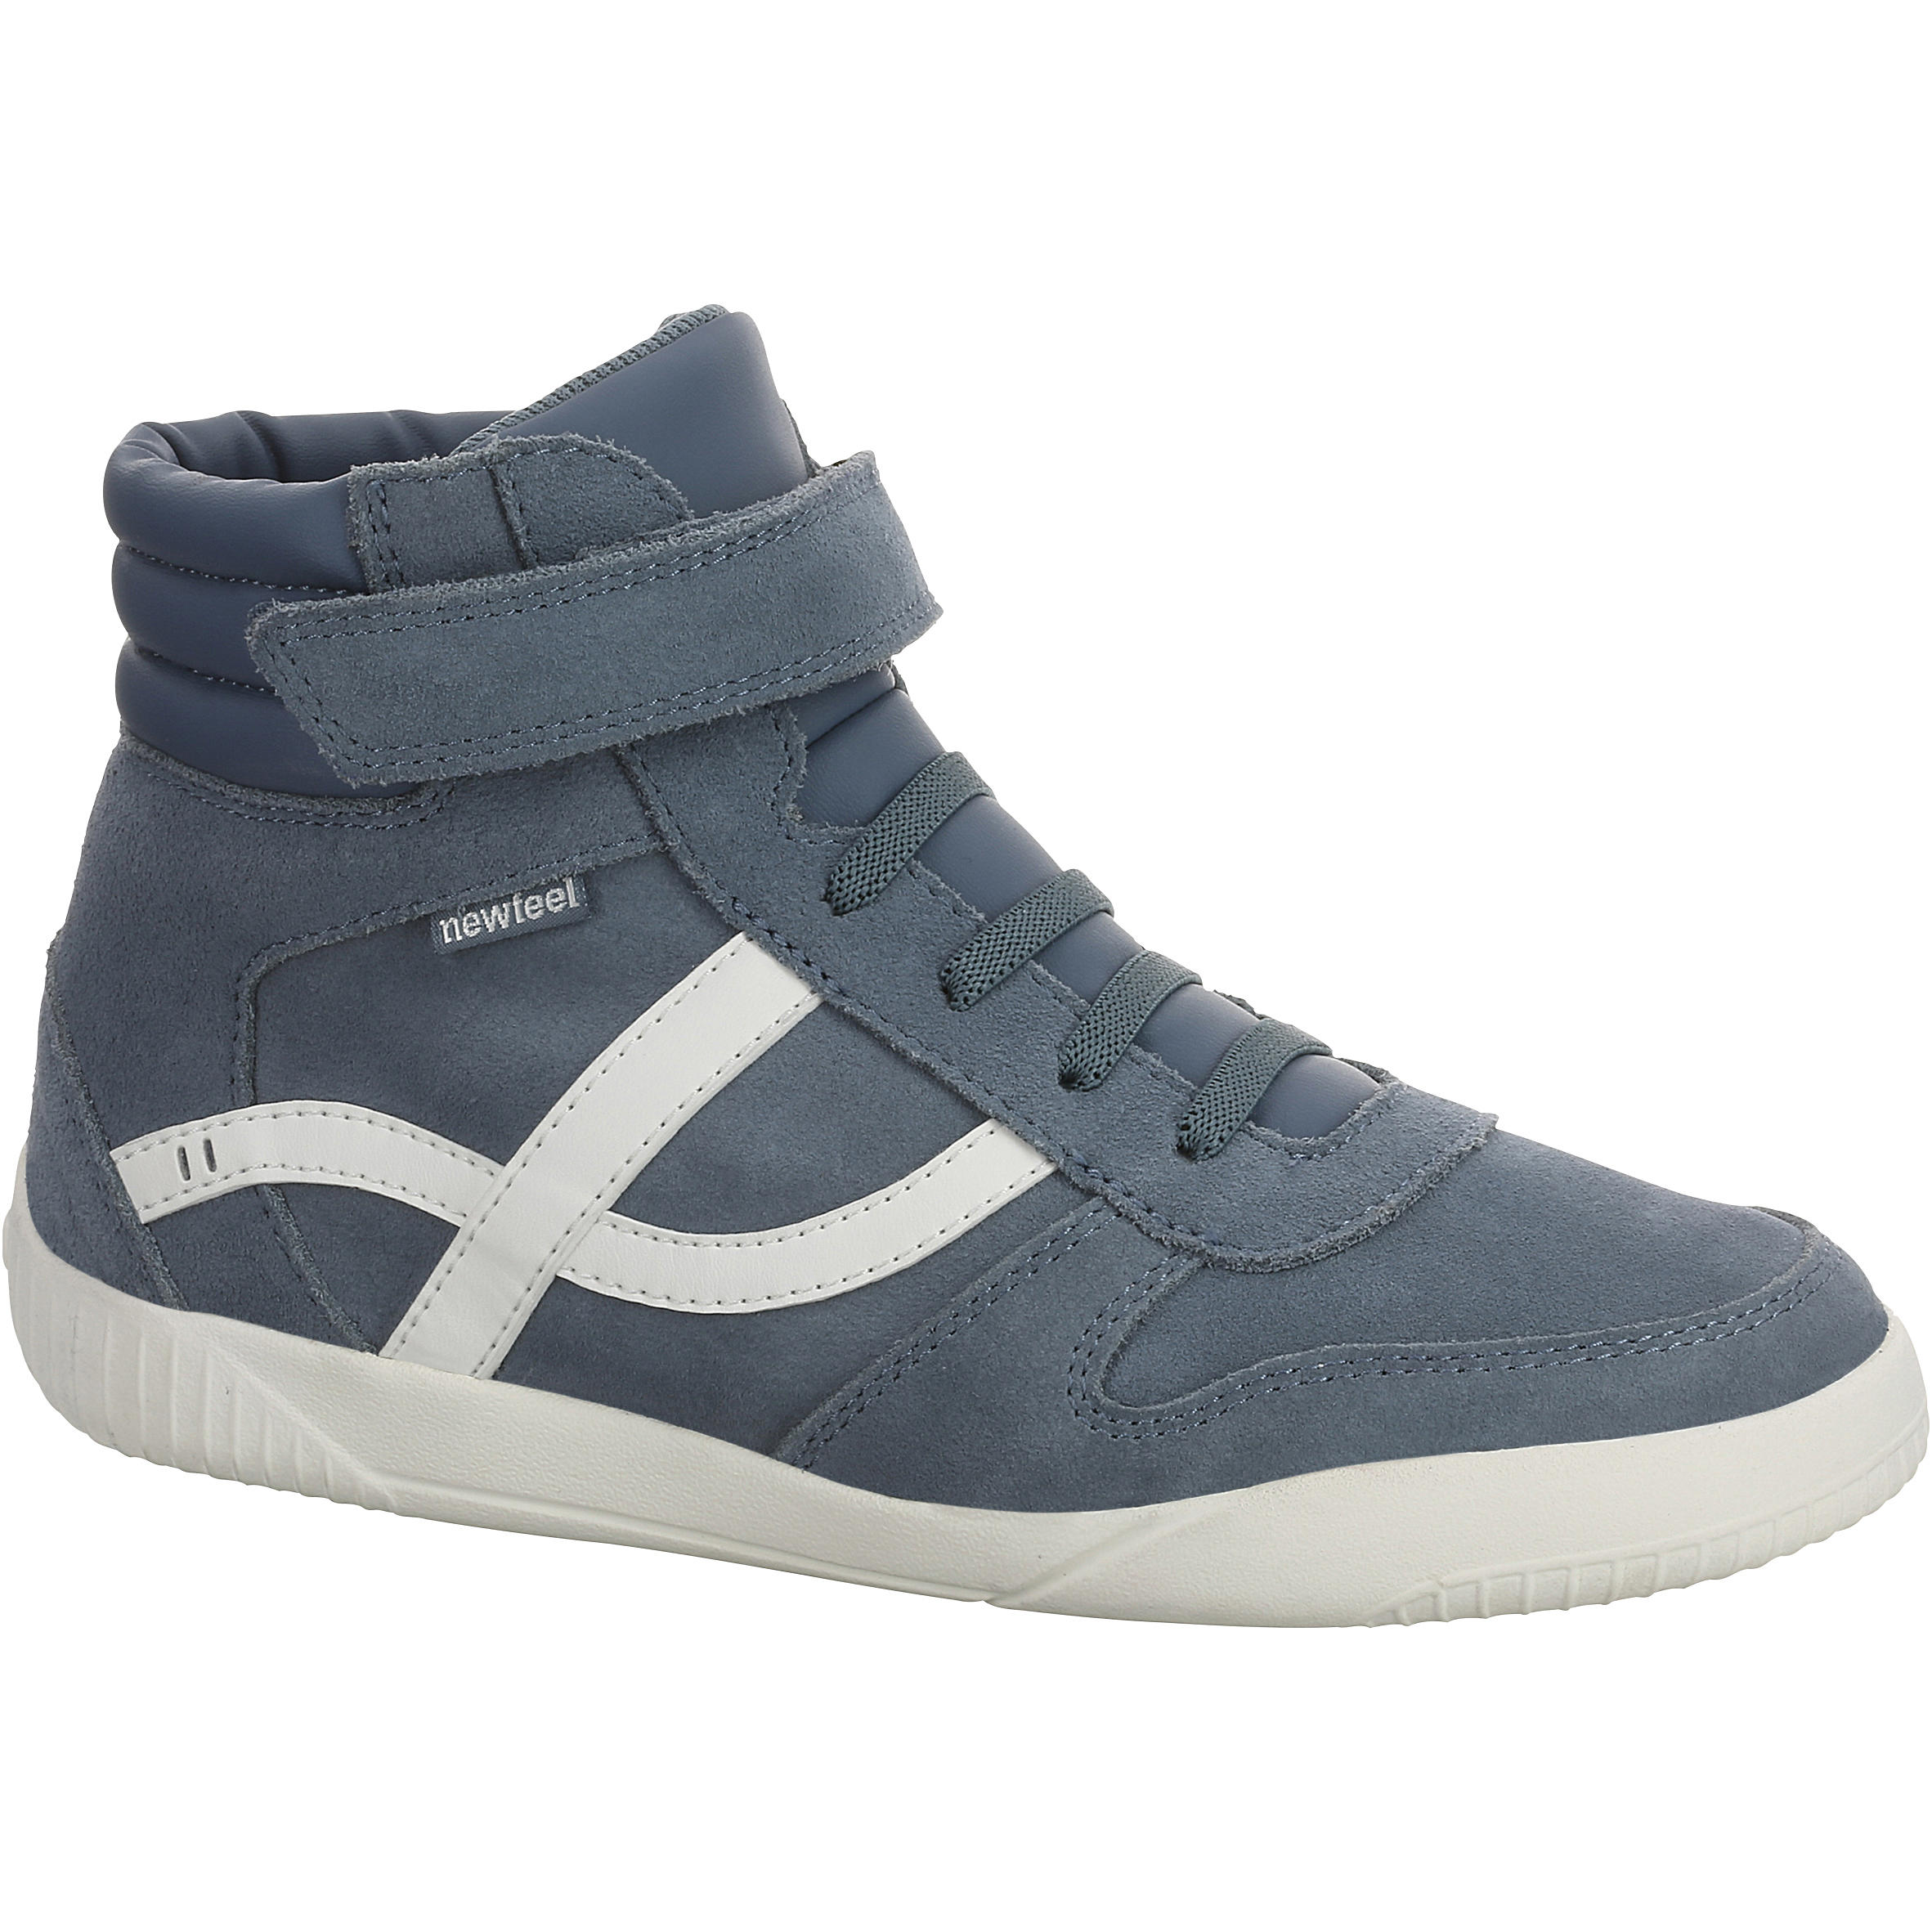 db4e69eed91d Marche Enfant Blanc Chaussures Mid Jeans Jarry Cuir FJclK3T1